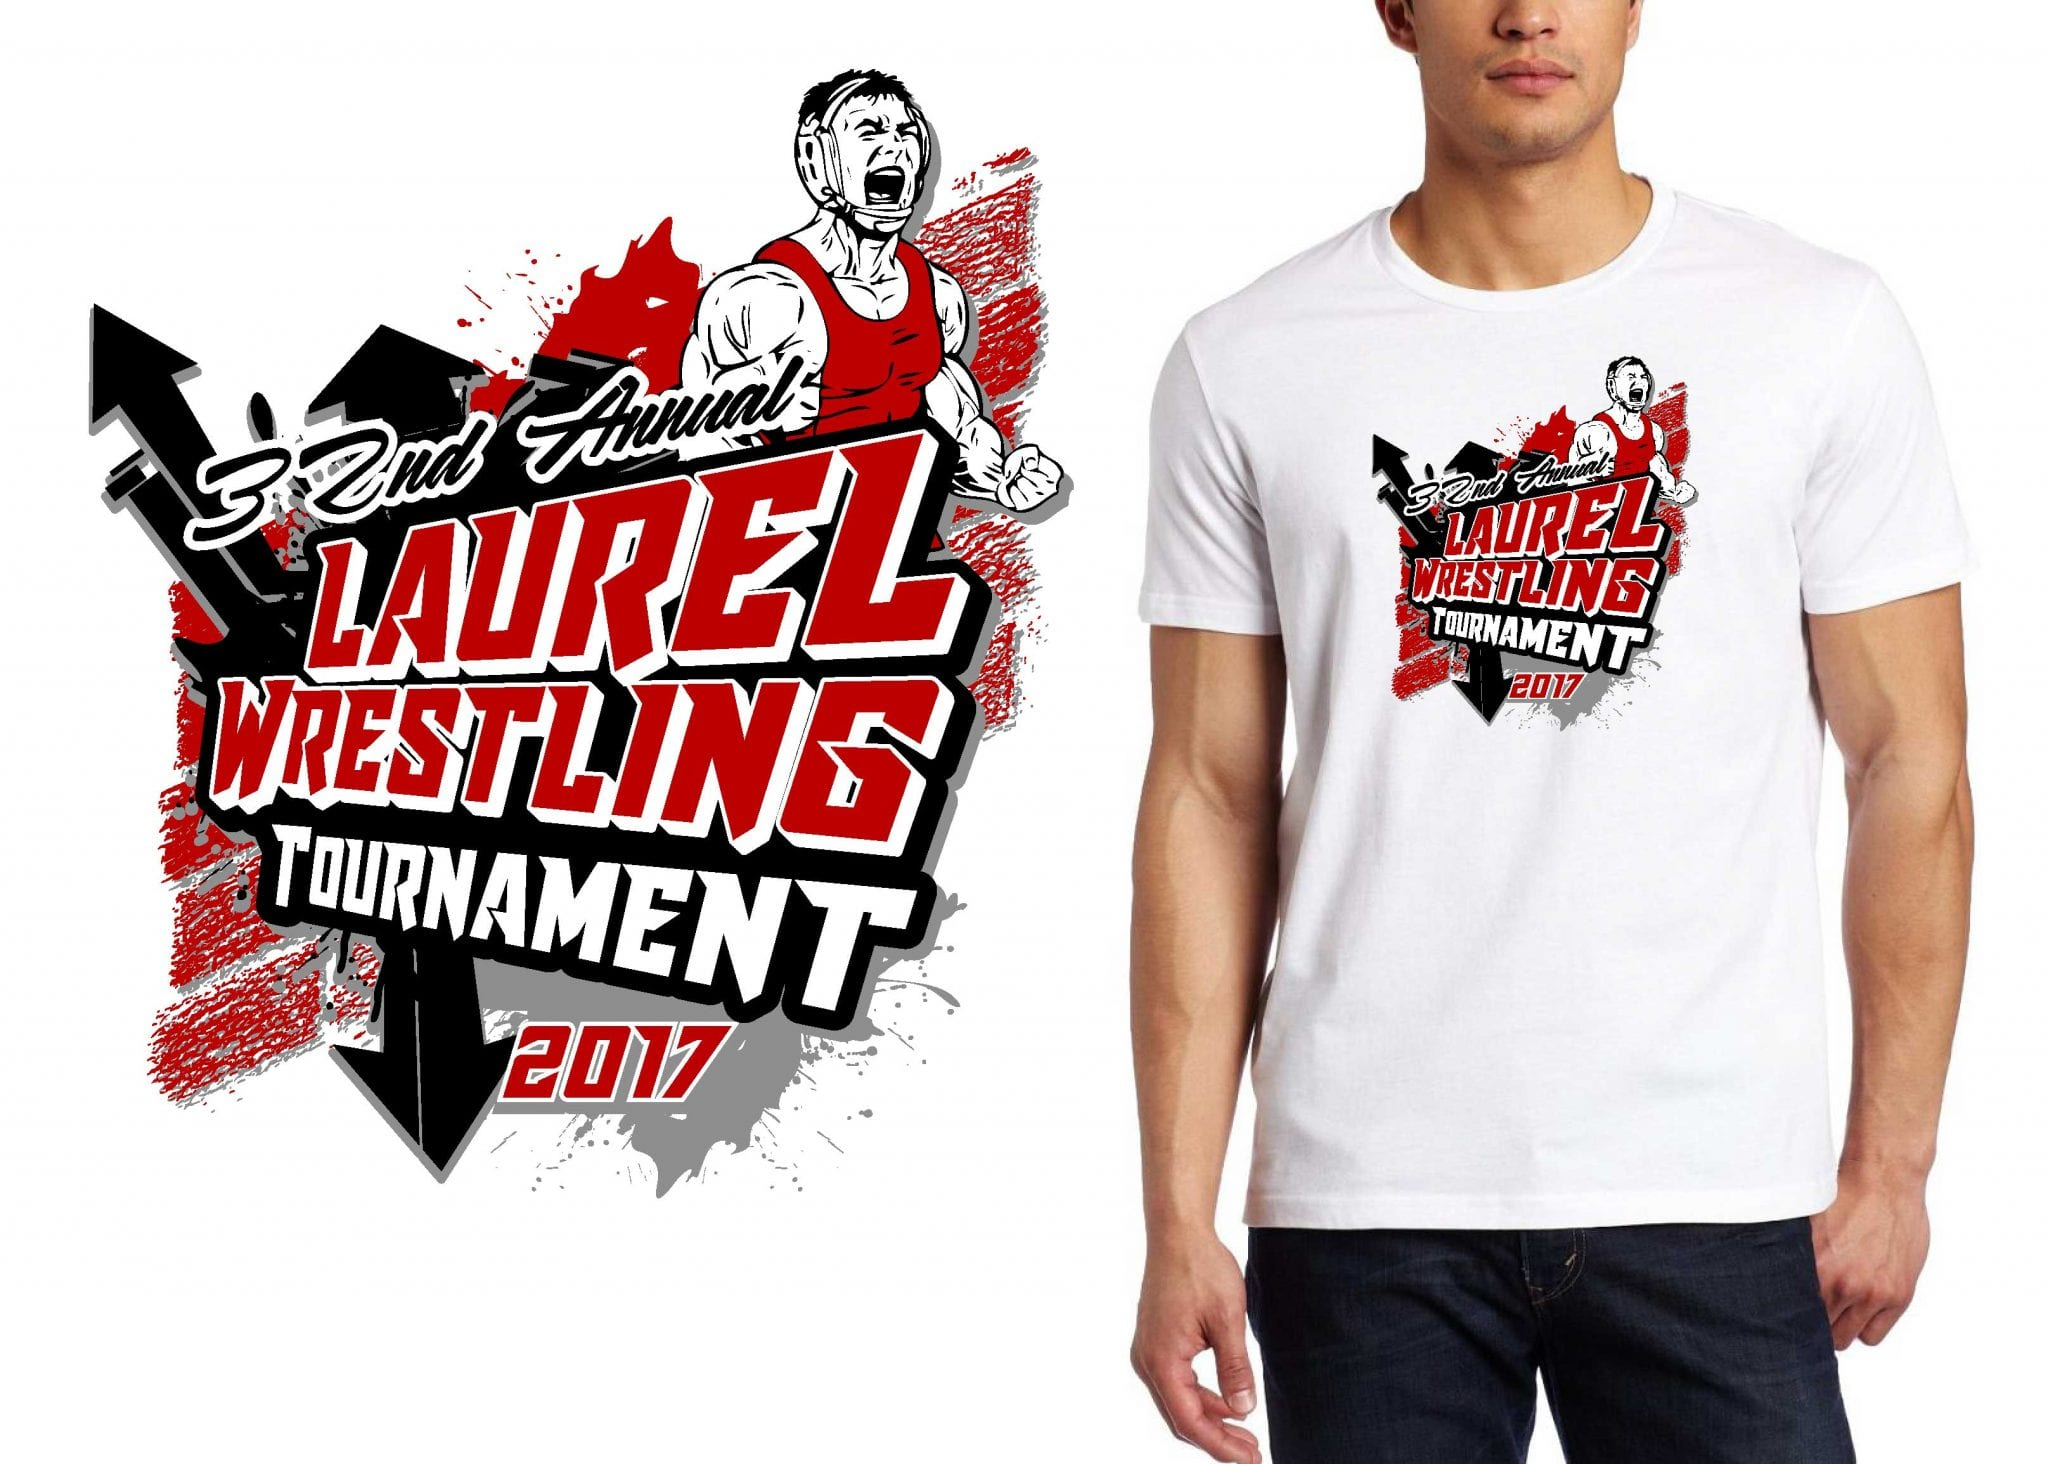 2017 31st Annual Laurel Wrestling Tournament vector logo design for t-shirt UrArtStudio